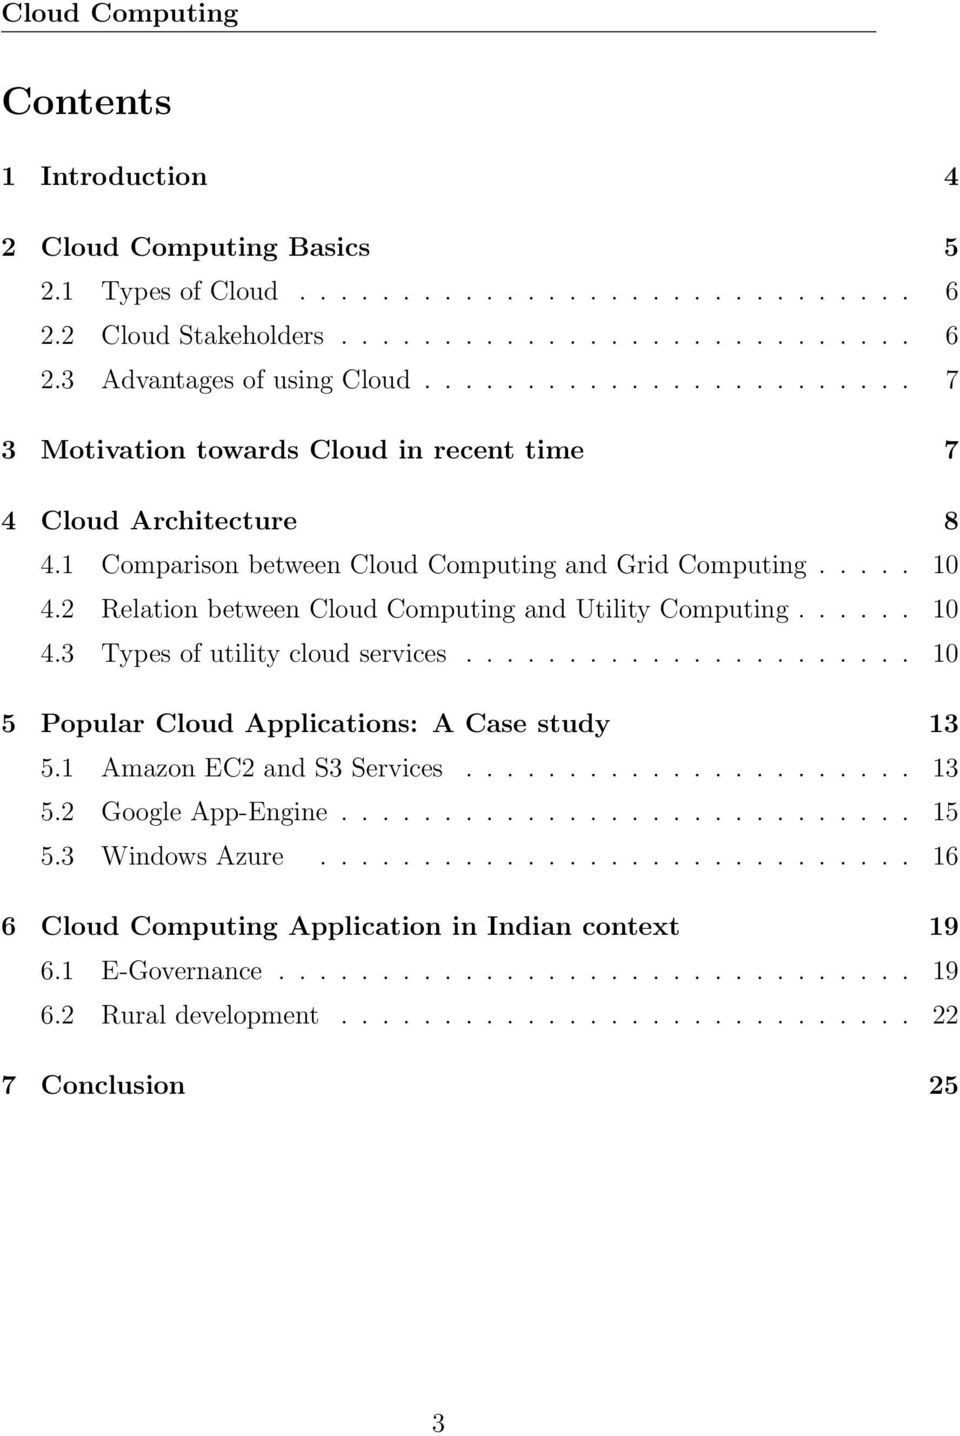 2 Relation between Cloud Computing and Utility Computing...... 10 4.3 Types of utility cloud services...................... 10 5 Popular Cloud Applications: A Case study 13 5.